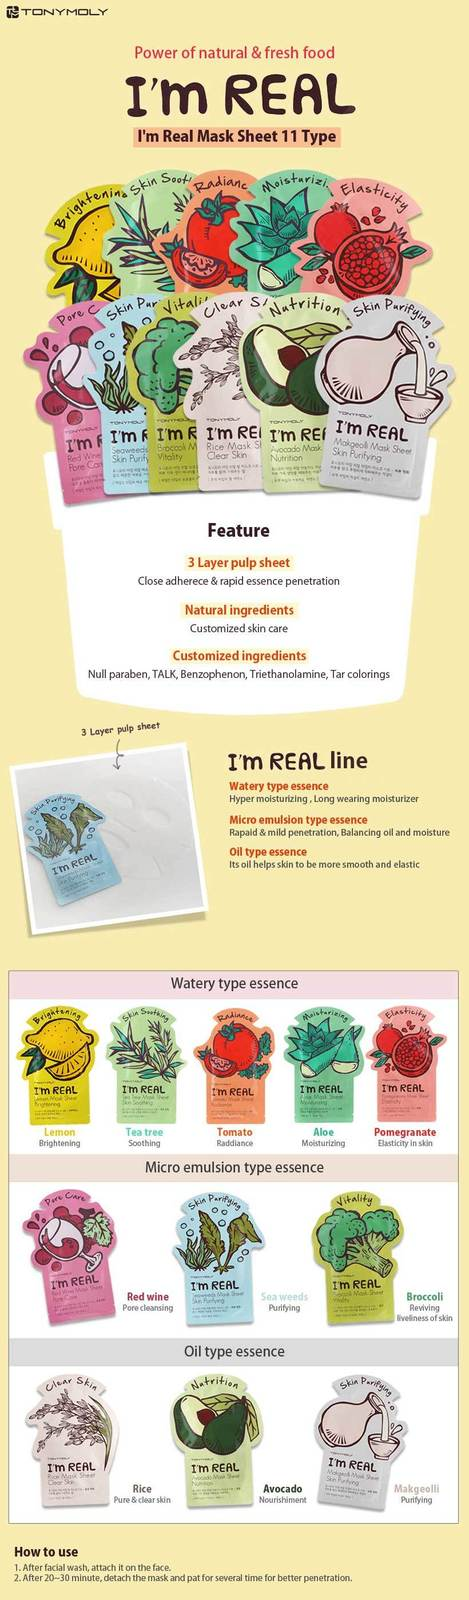 TONYMOLY TONYMOLY I AM REAL Face Mask Sheet Pack / TOMATO 10Sheets SET / Radianc